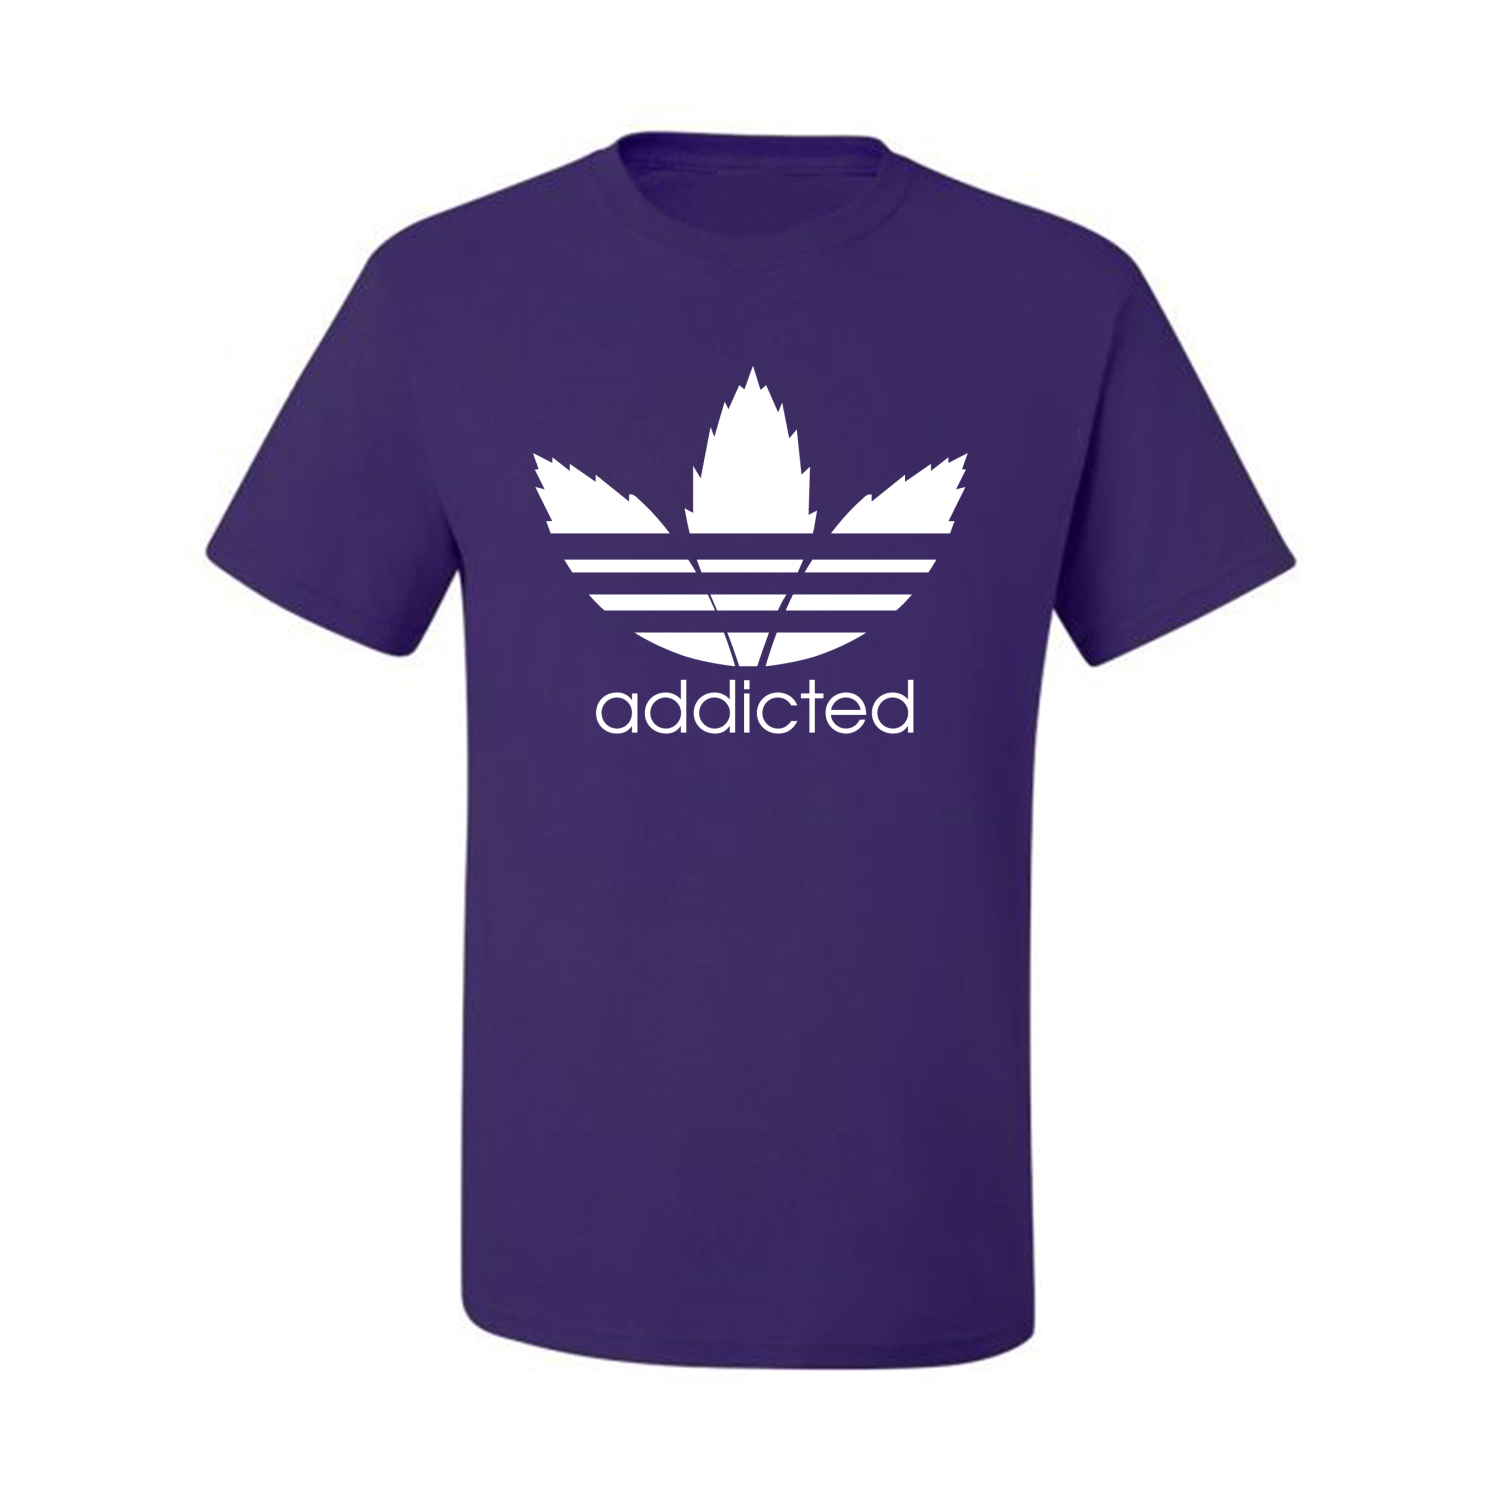 Addicted-White-Pot-Leaf-Mens-Weed-T-Shirt-Graphic-Parody-Tee thumbnail 32